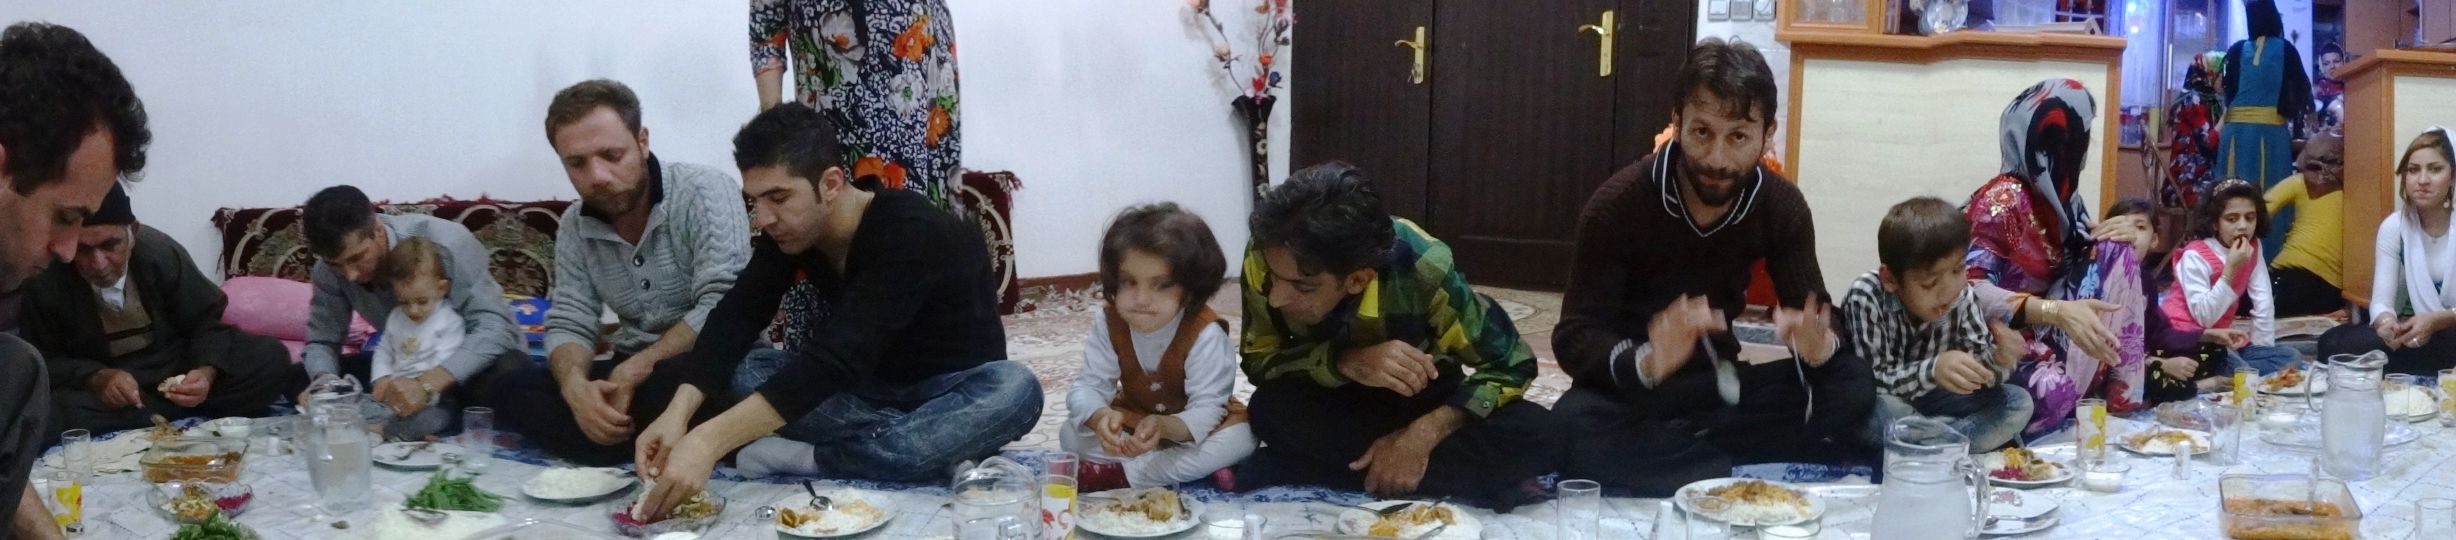 name of place? - sharing a fantastic meal with this Kurdish family